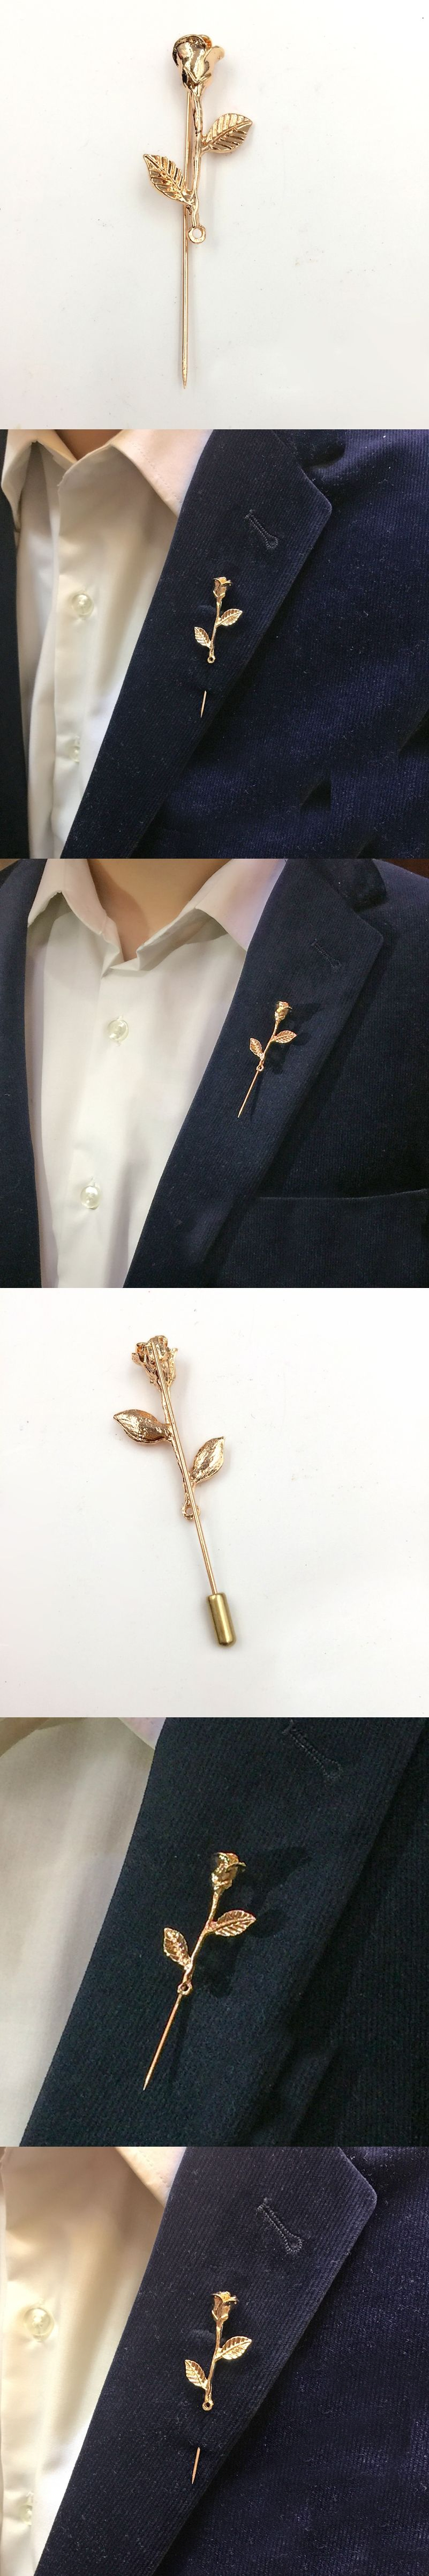 cheap fashion fastener gentleman wear brooch and s lapel accessories with feather product by online suit pins for stick boutonniere handmade men